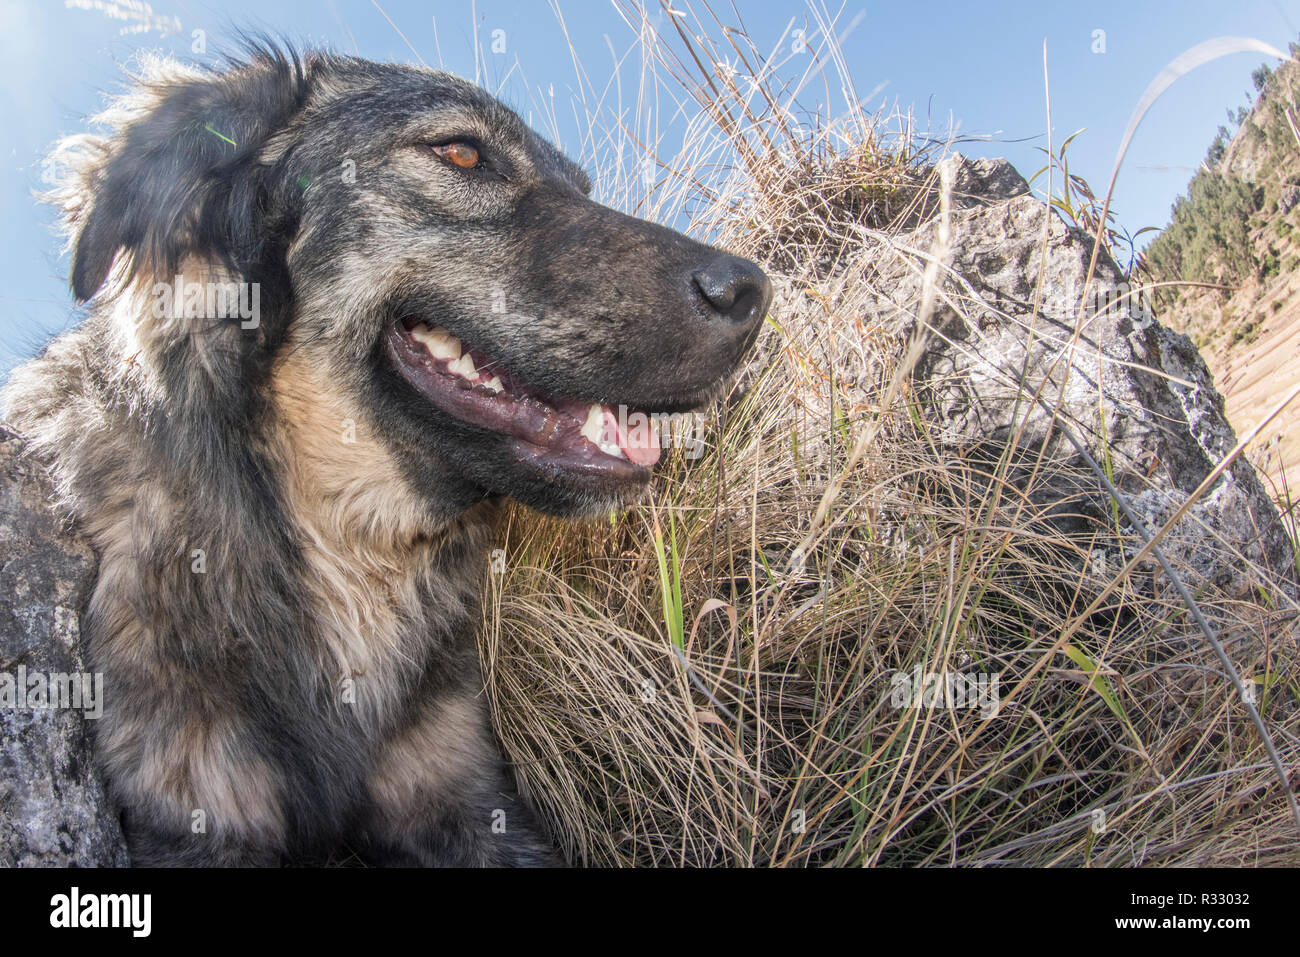 A dog trying to beat the heat by resting in the shade high up in the Andes mountains outside of Cusco. - Stock Image